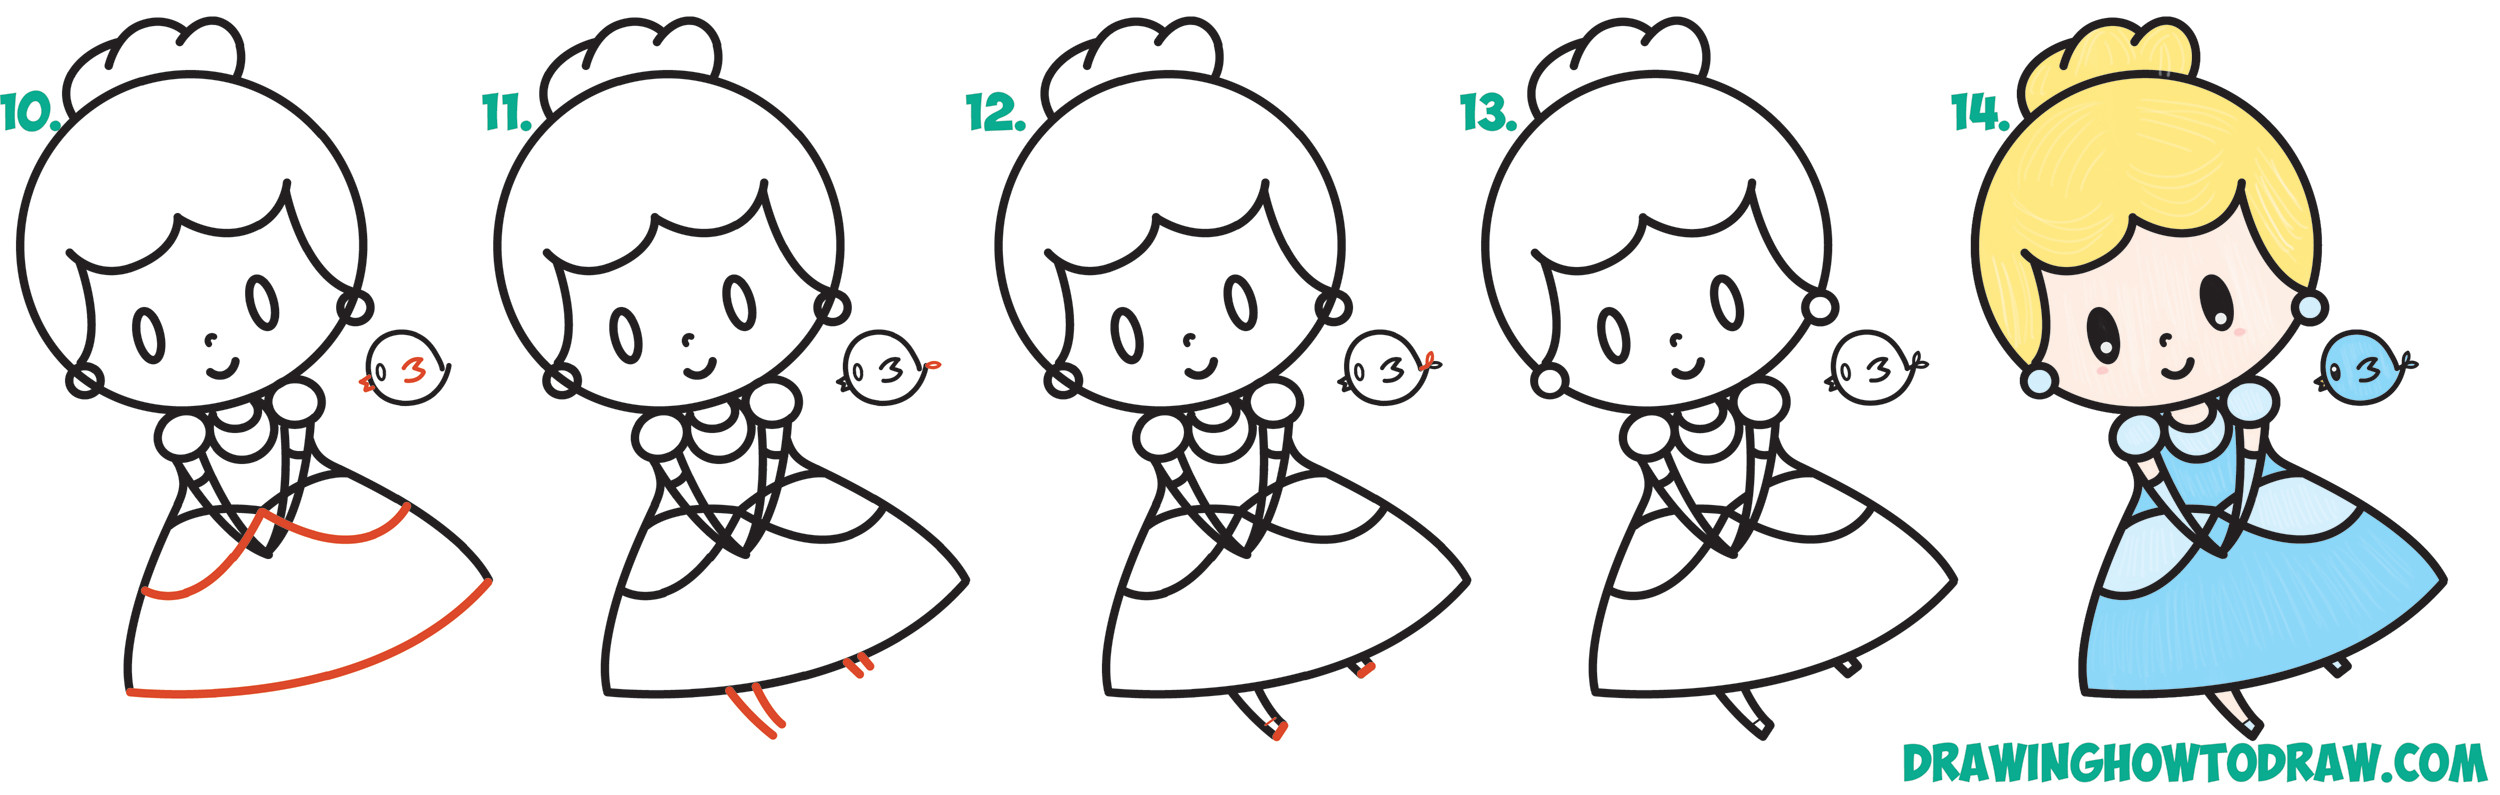 How To Draw Cute Chibi / Kawaii Cinderella & Blue Bird